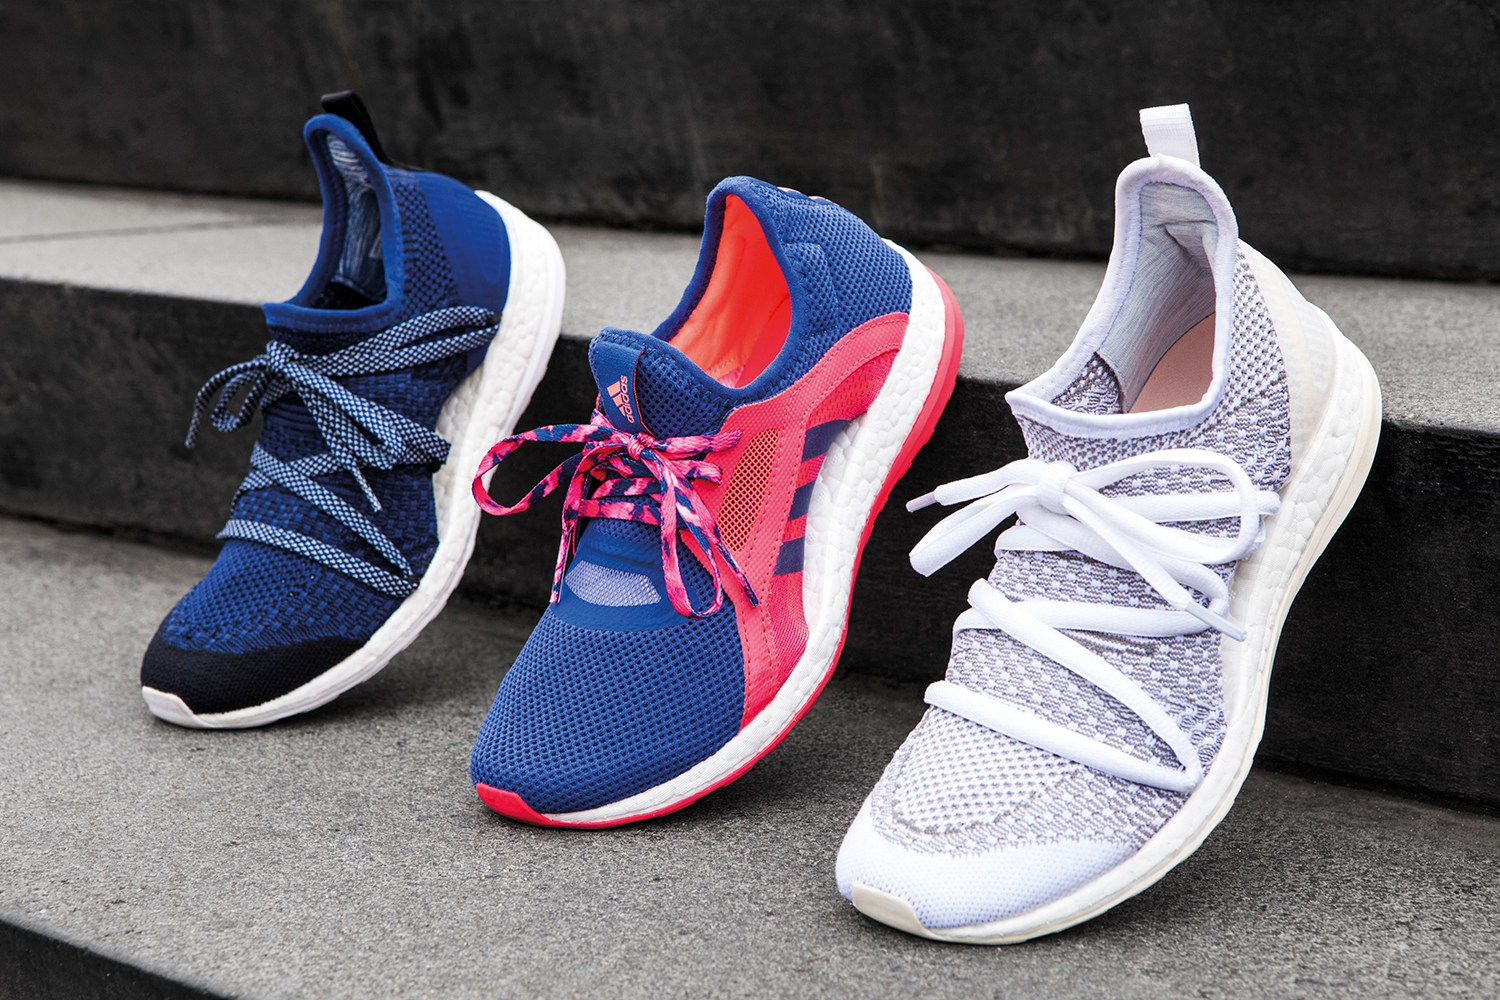 adidas-pure-boost-x-6